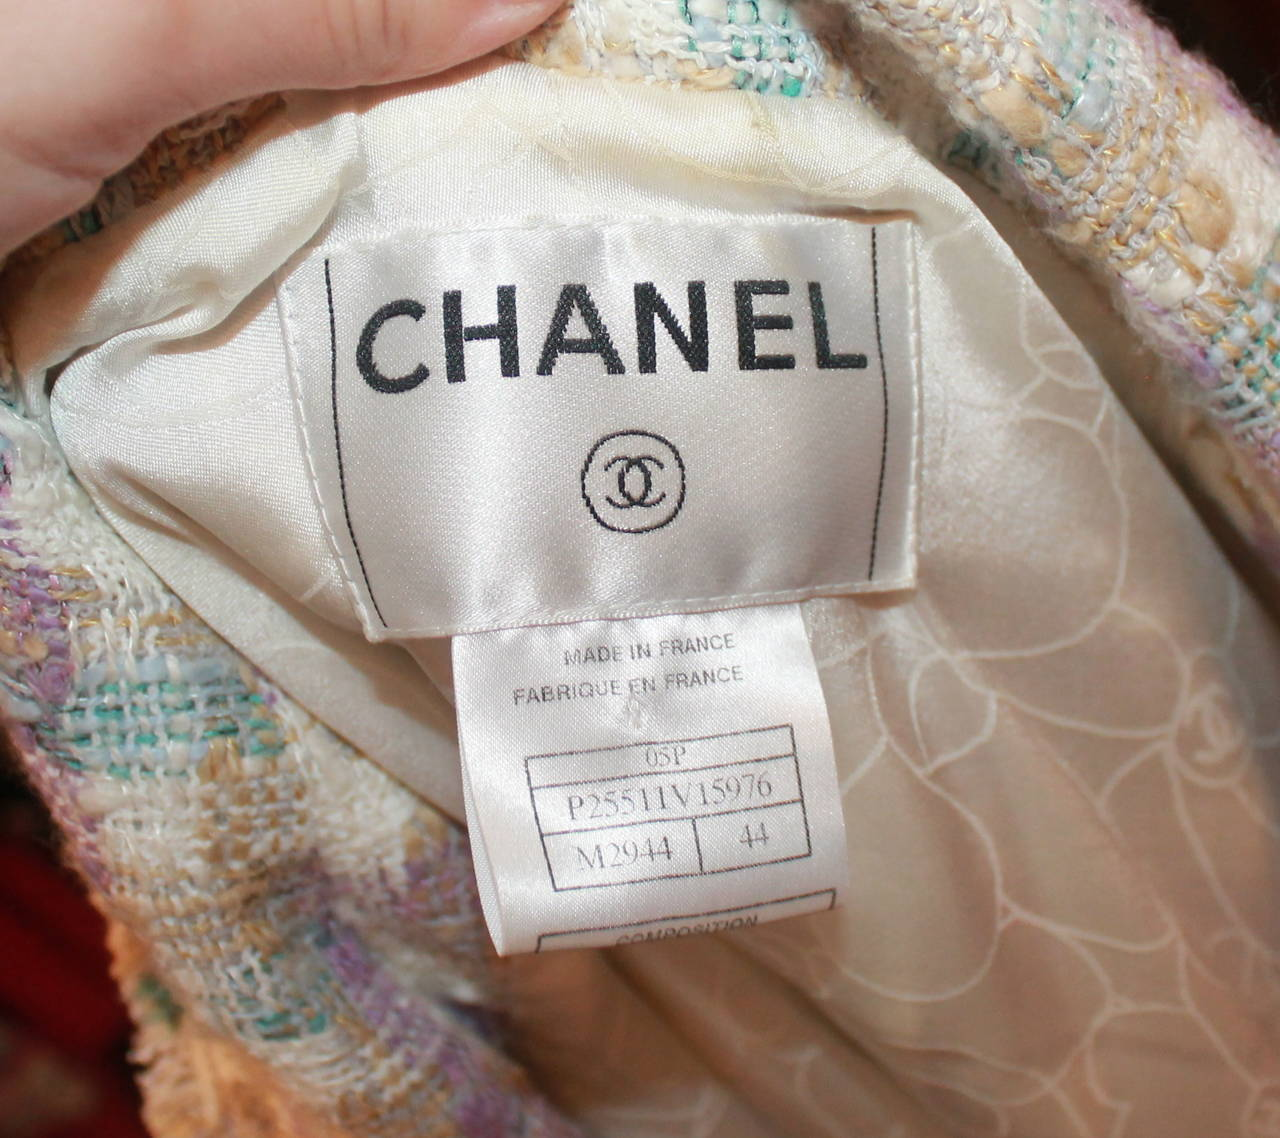 2005 Chanel Multi Color Pastel Tweed Jacket with Mademoiselle Buttons For Sale 2